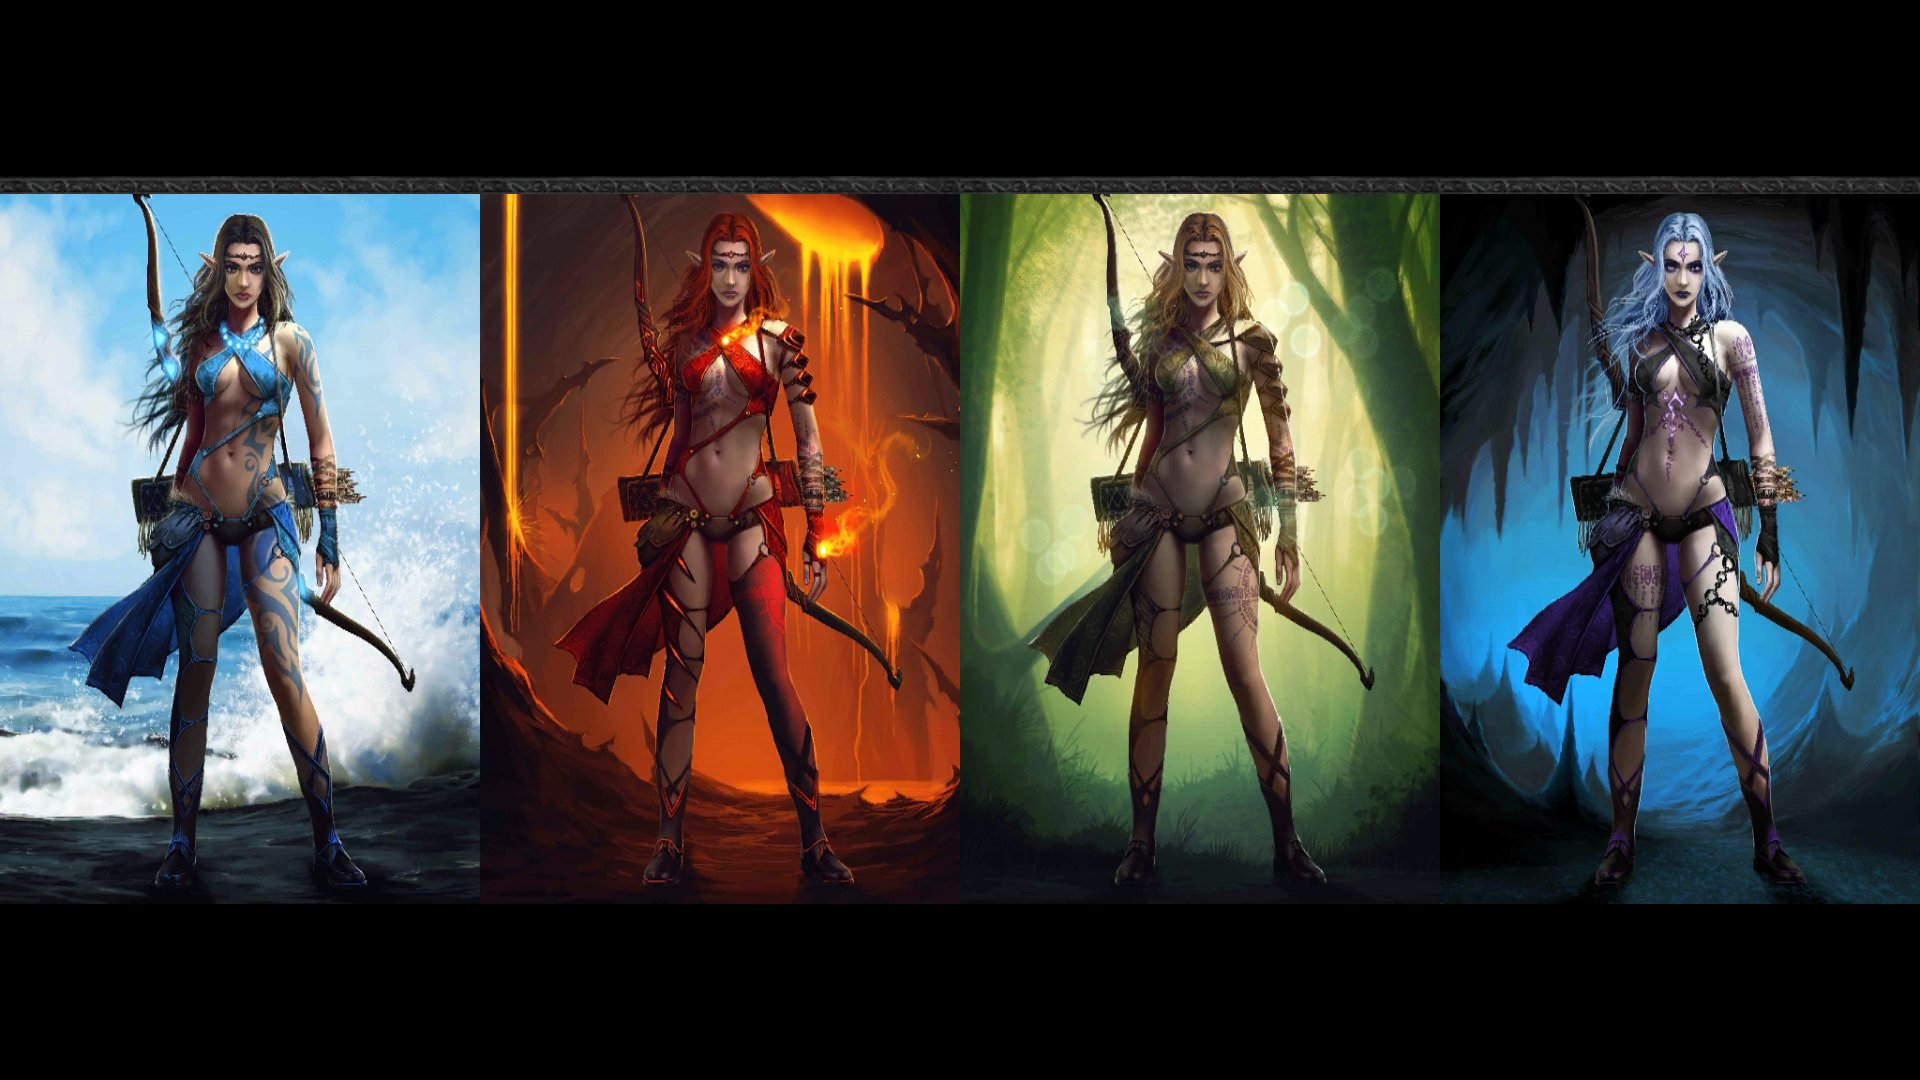 scrolling wallpaper adsolutions fire fantasy arcade action scrolling android adventure